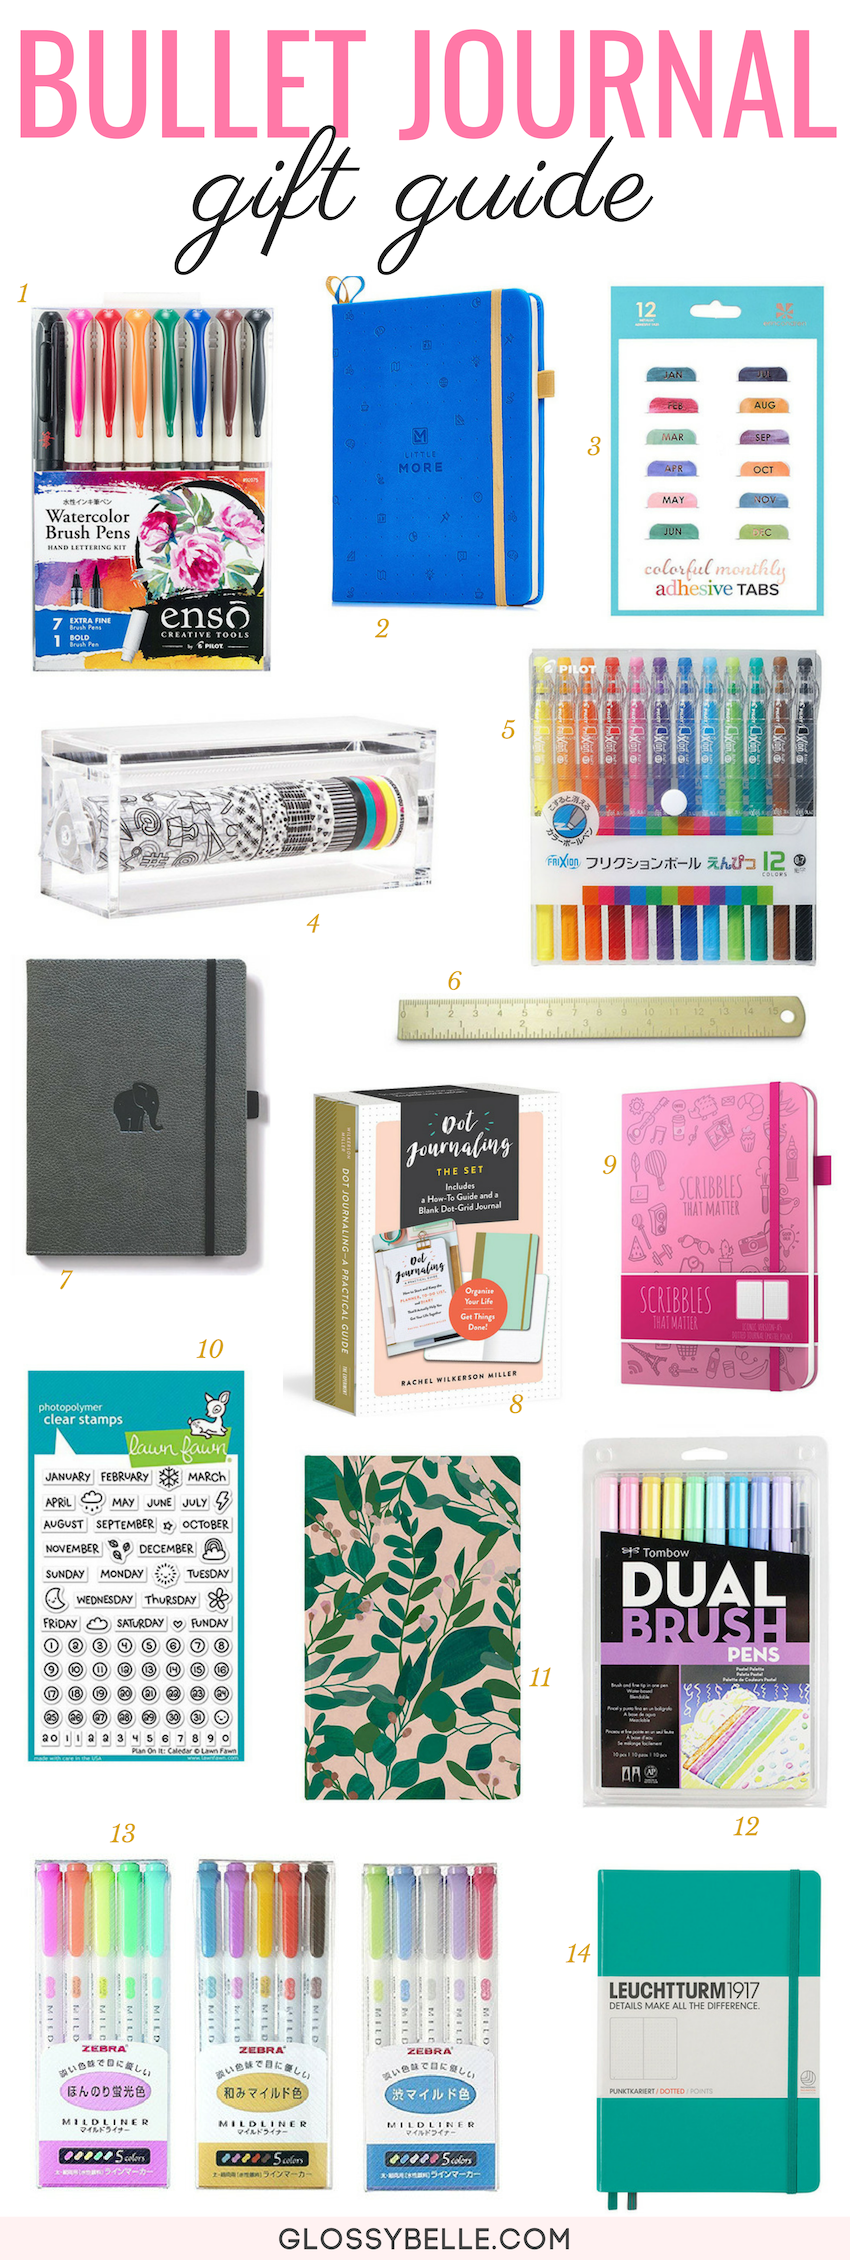 If you're looking for great gift ideas for the bullet journal and planner lover in your life this holiday season, here are 18 must-have journal supplies and notebooks to check out! | bullet journal supplies | gift ideas | christmas | christmas gifts | holiday gifts | holiday gift guide #bulletjournal #giftguide #christmasgifts #giftideas